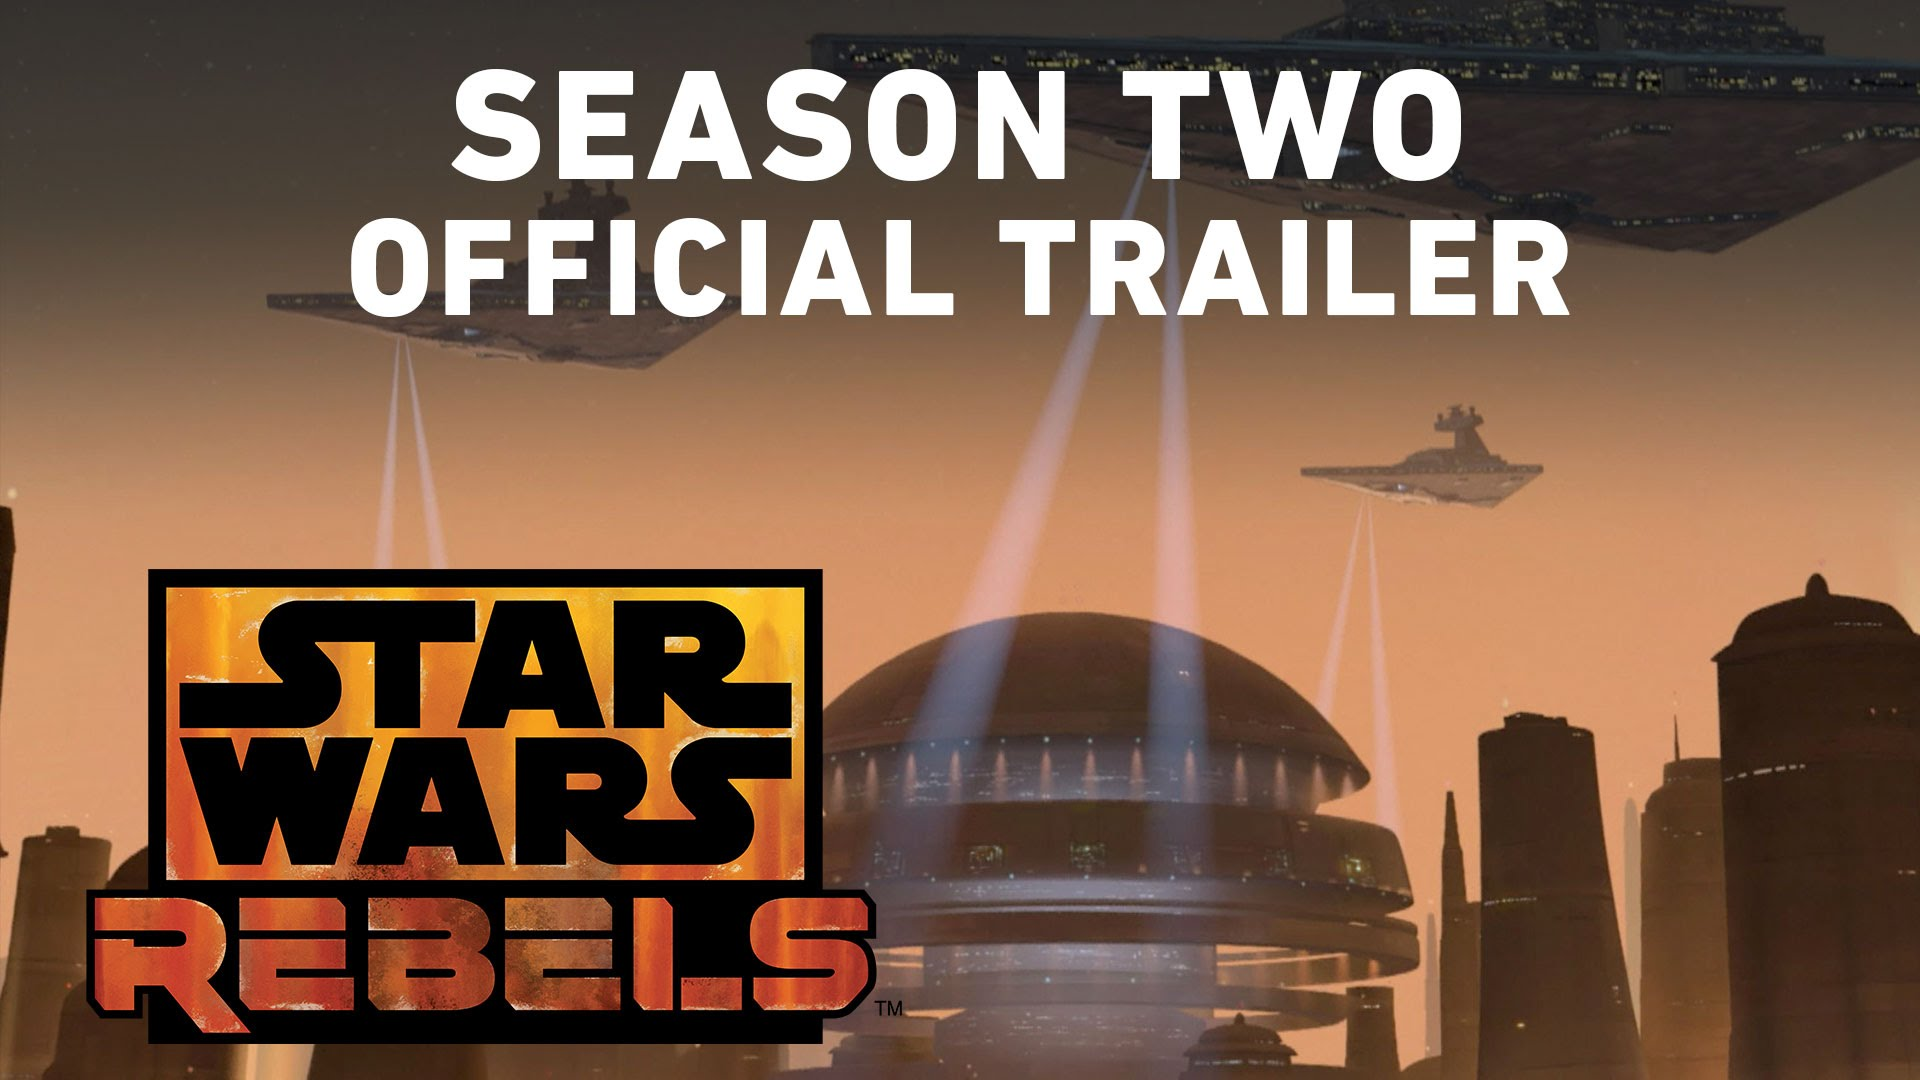 Trailer: STAR WARS REBELS Season 2